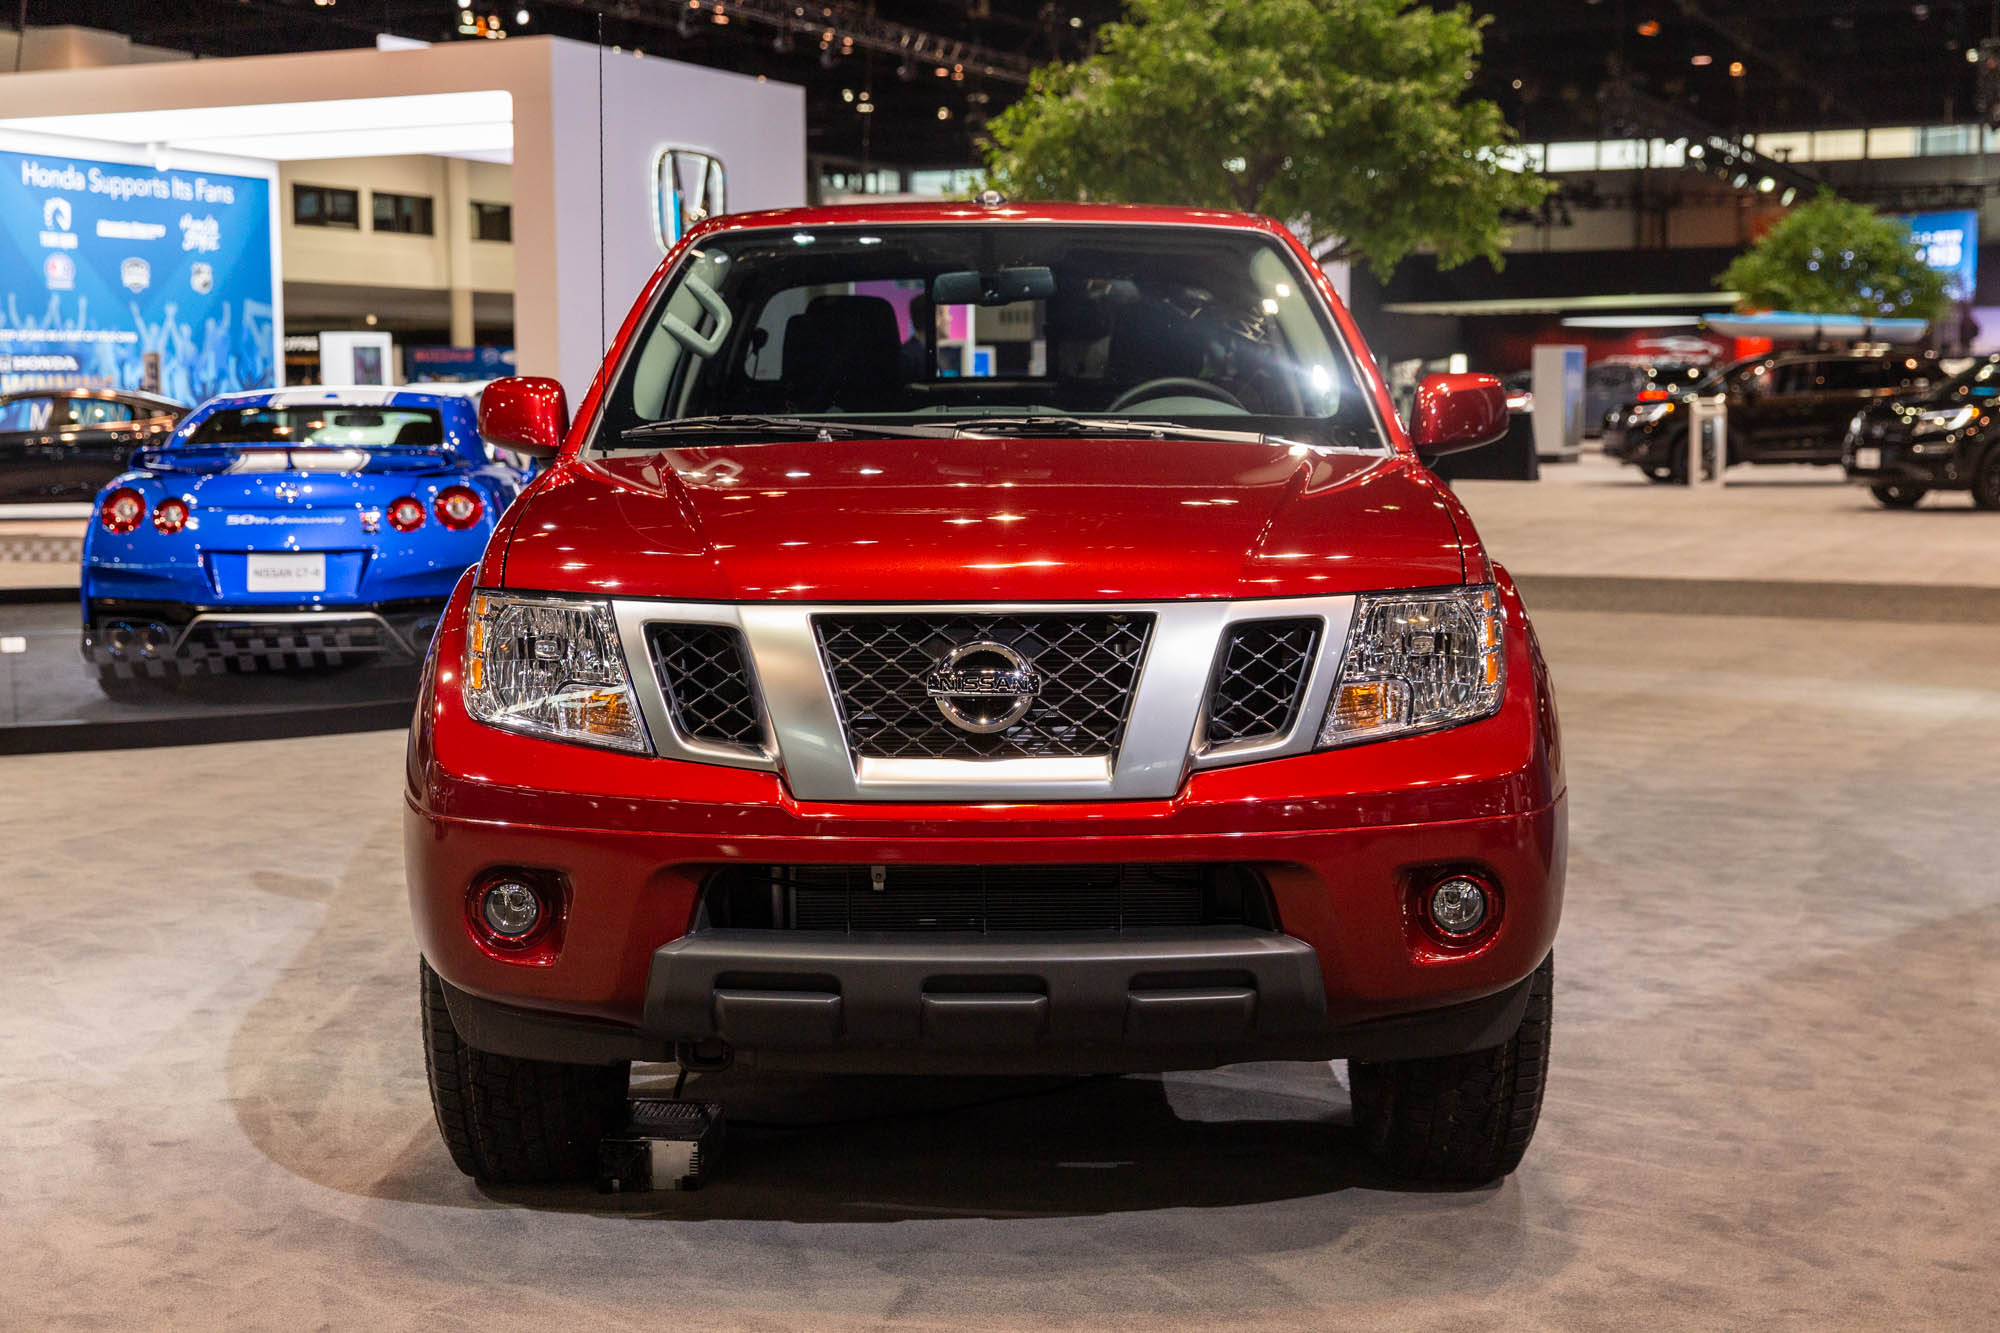 2020 Nissan Frontier Update Photos Design Performance And Price Details Otakukart News